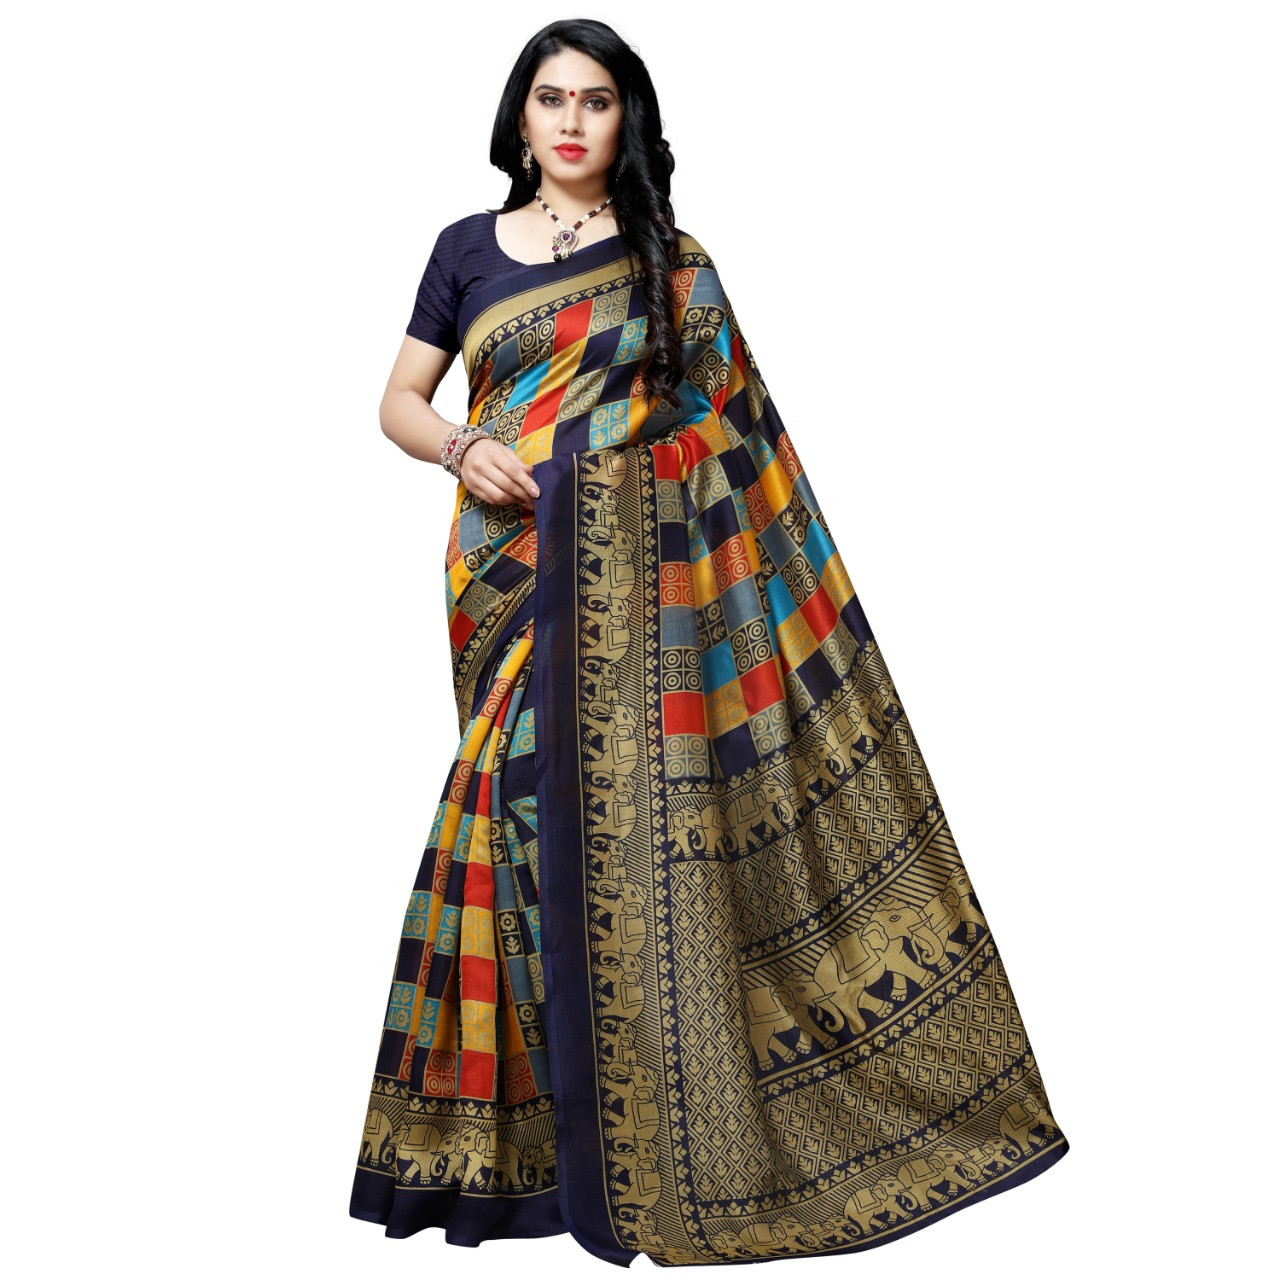 New Peaceful Litchi Fabric Black Party Wear Saree